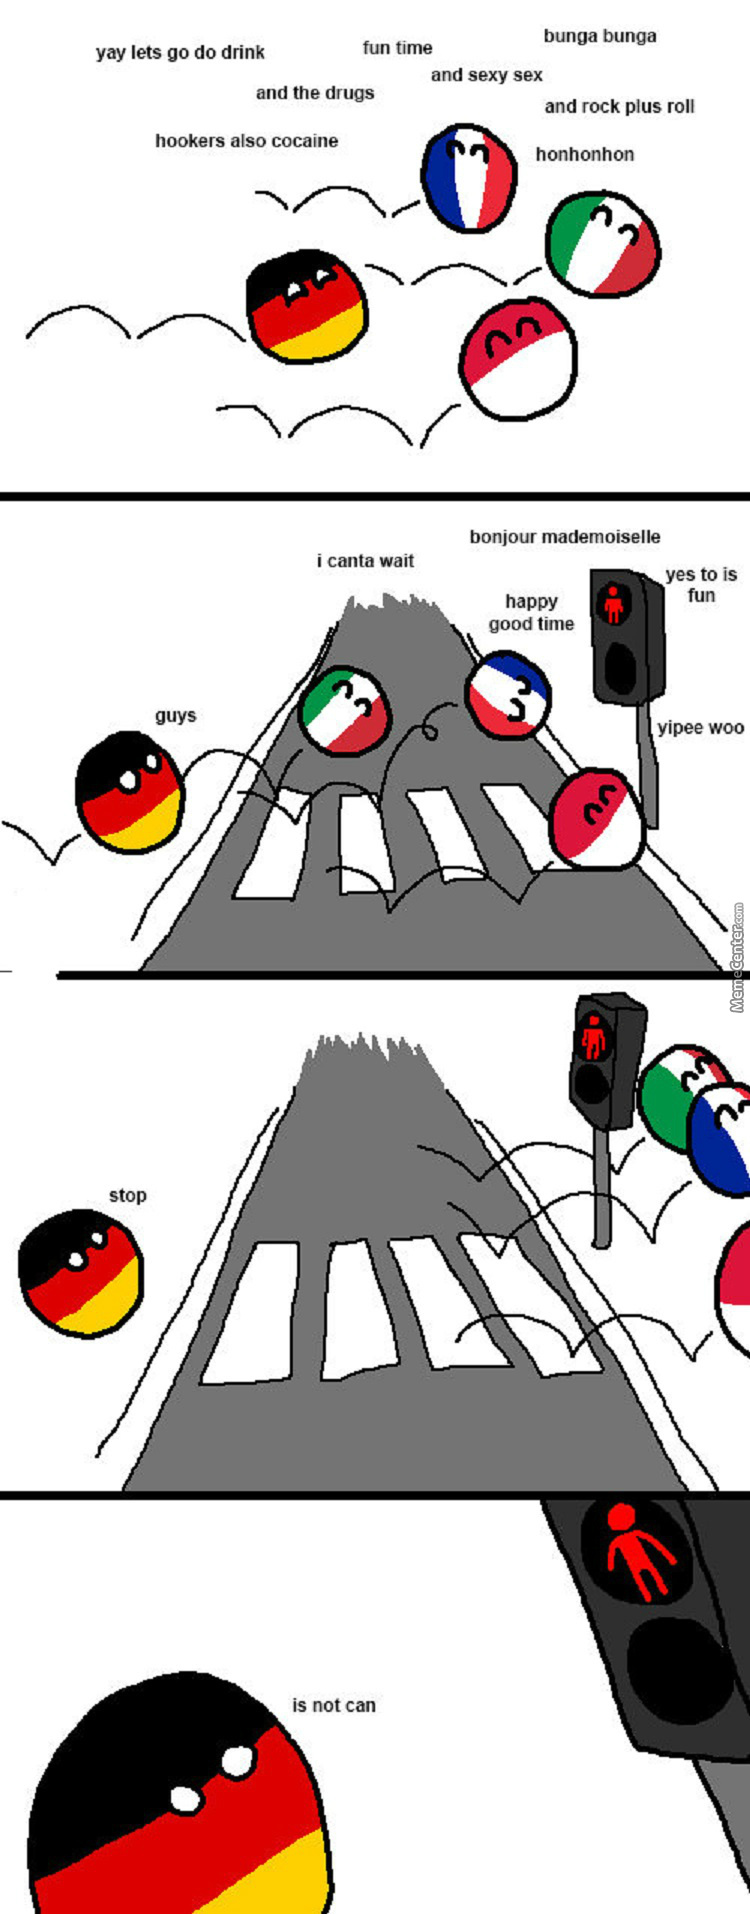 Because Germany